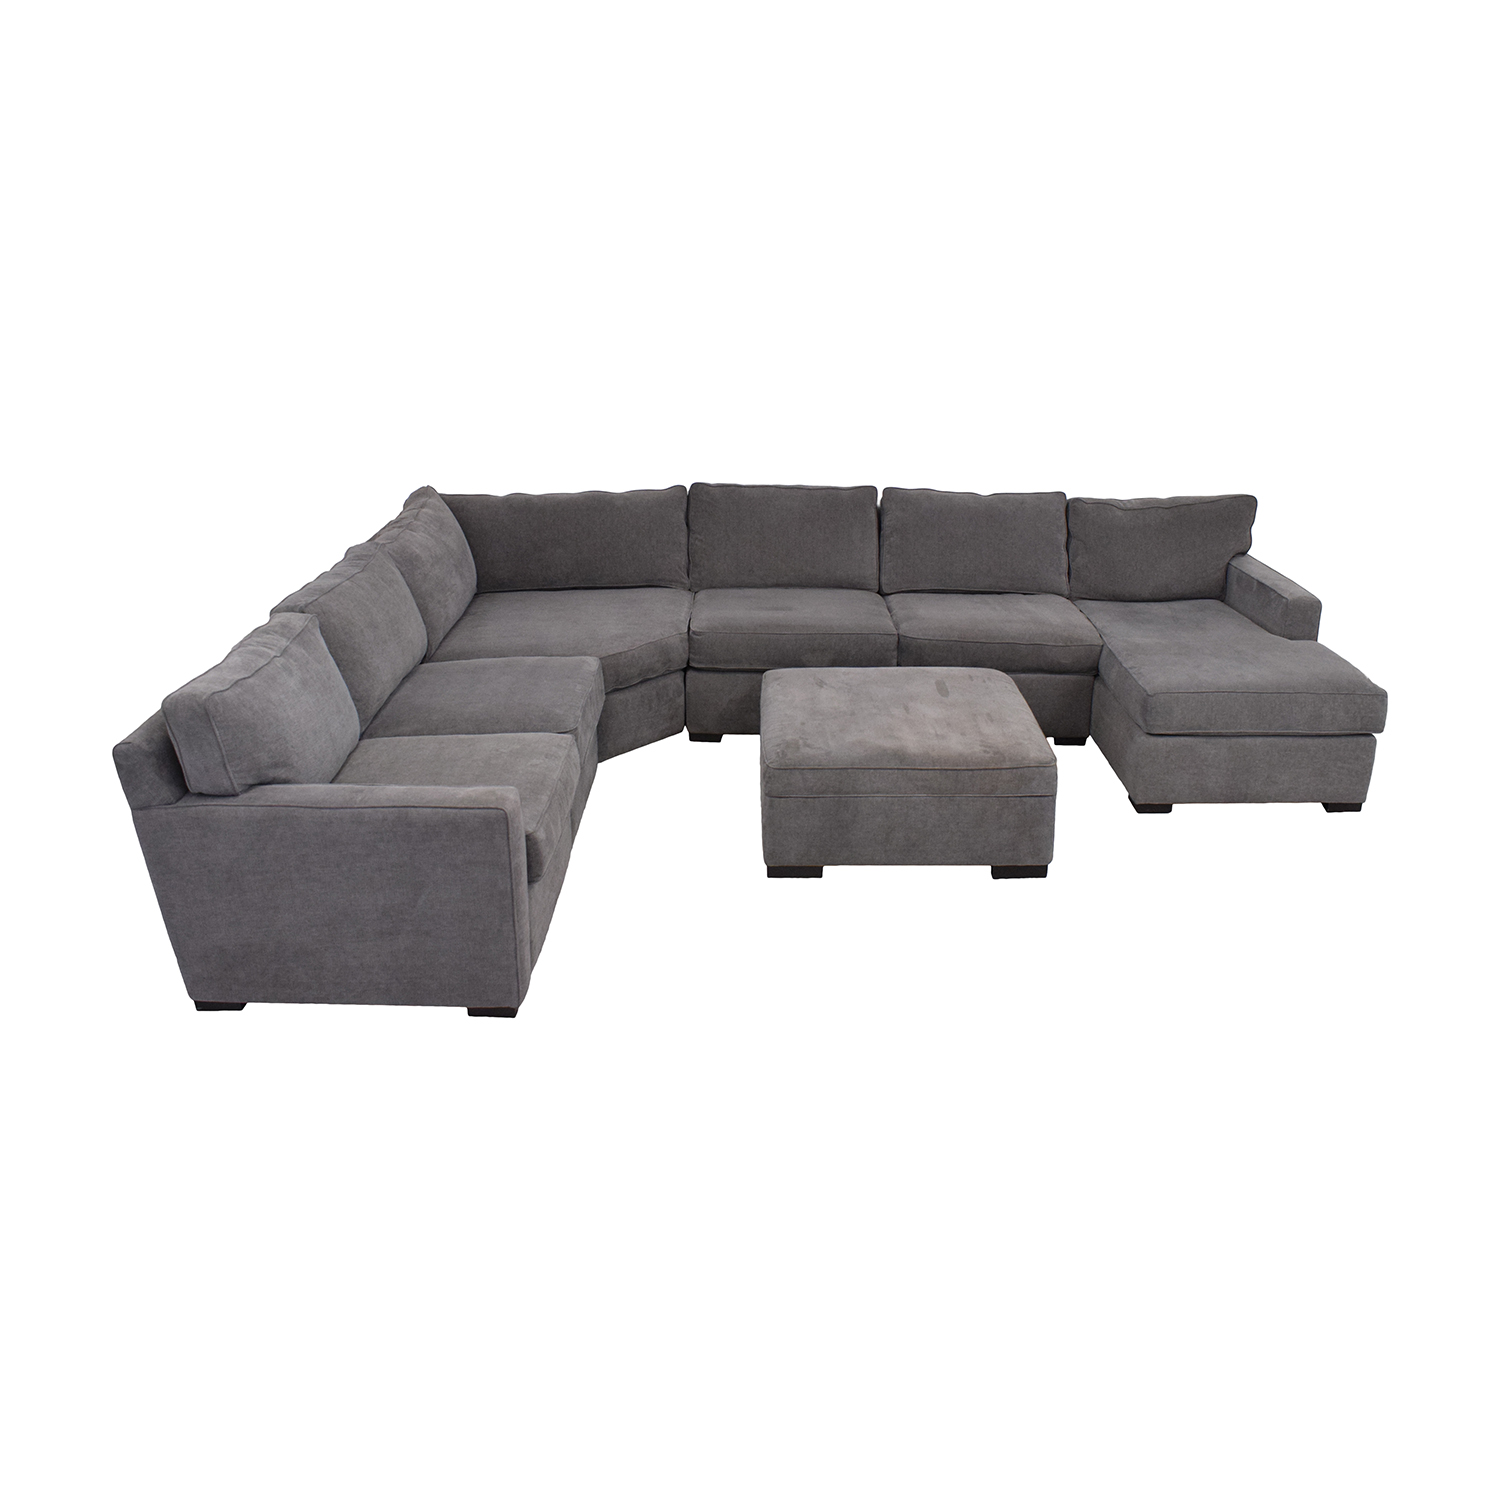 Macy's Radley Fabric 6-Piece Chaise Sectional Sofa with Corner Piece and Ottoman Macy's